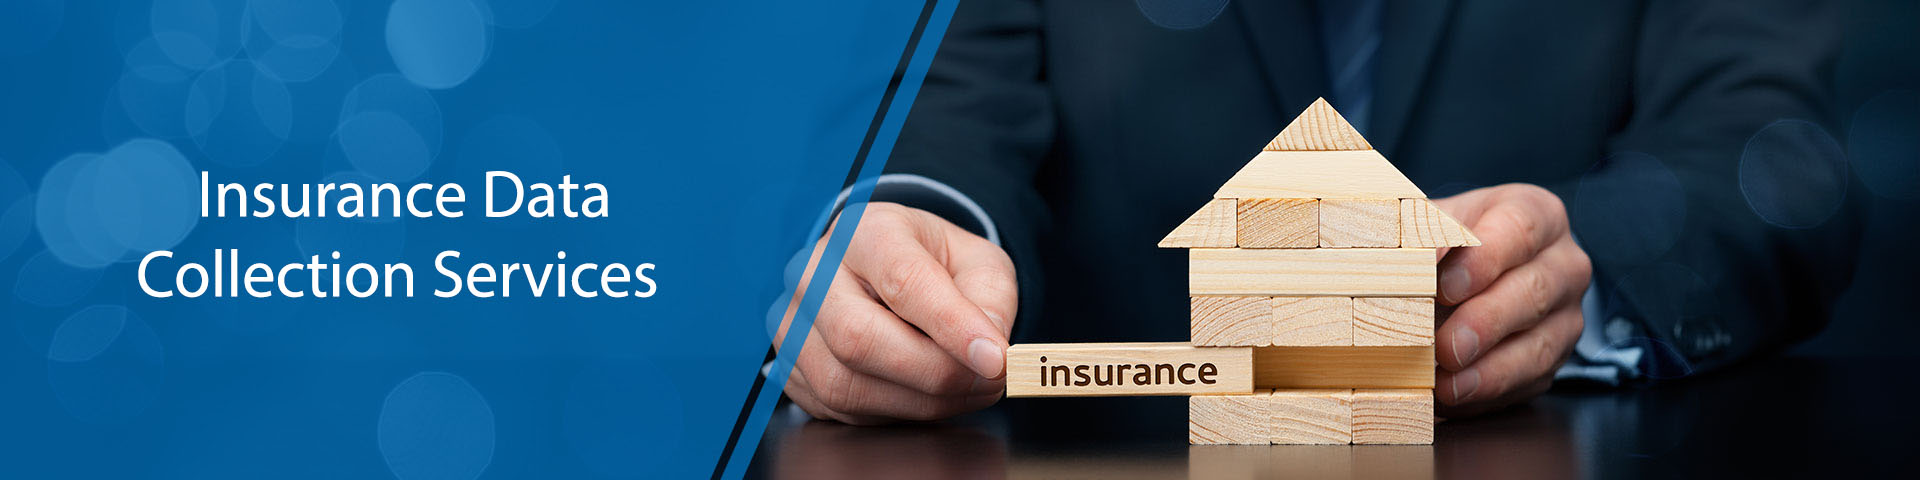 Insurance Data Collection Services